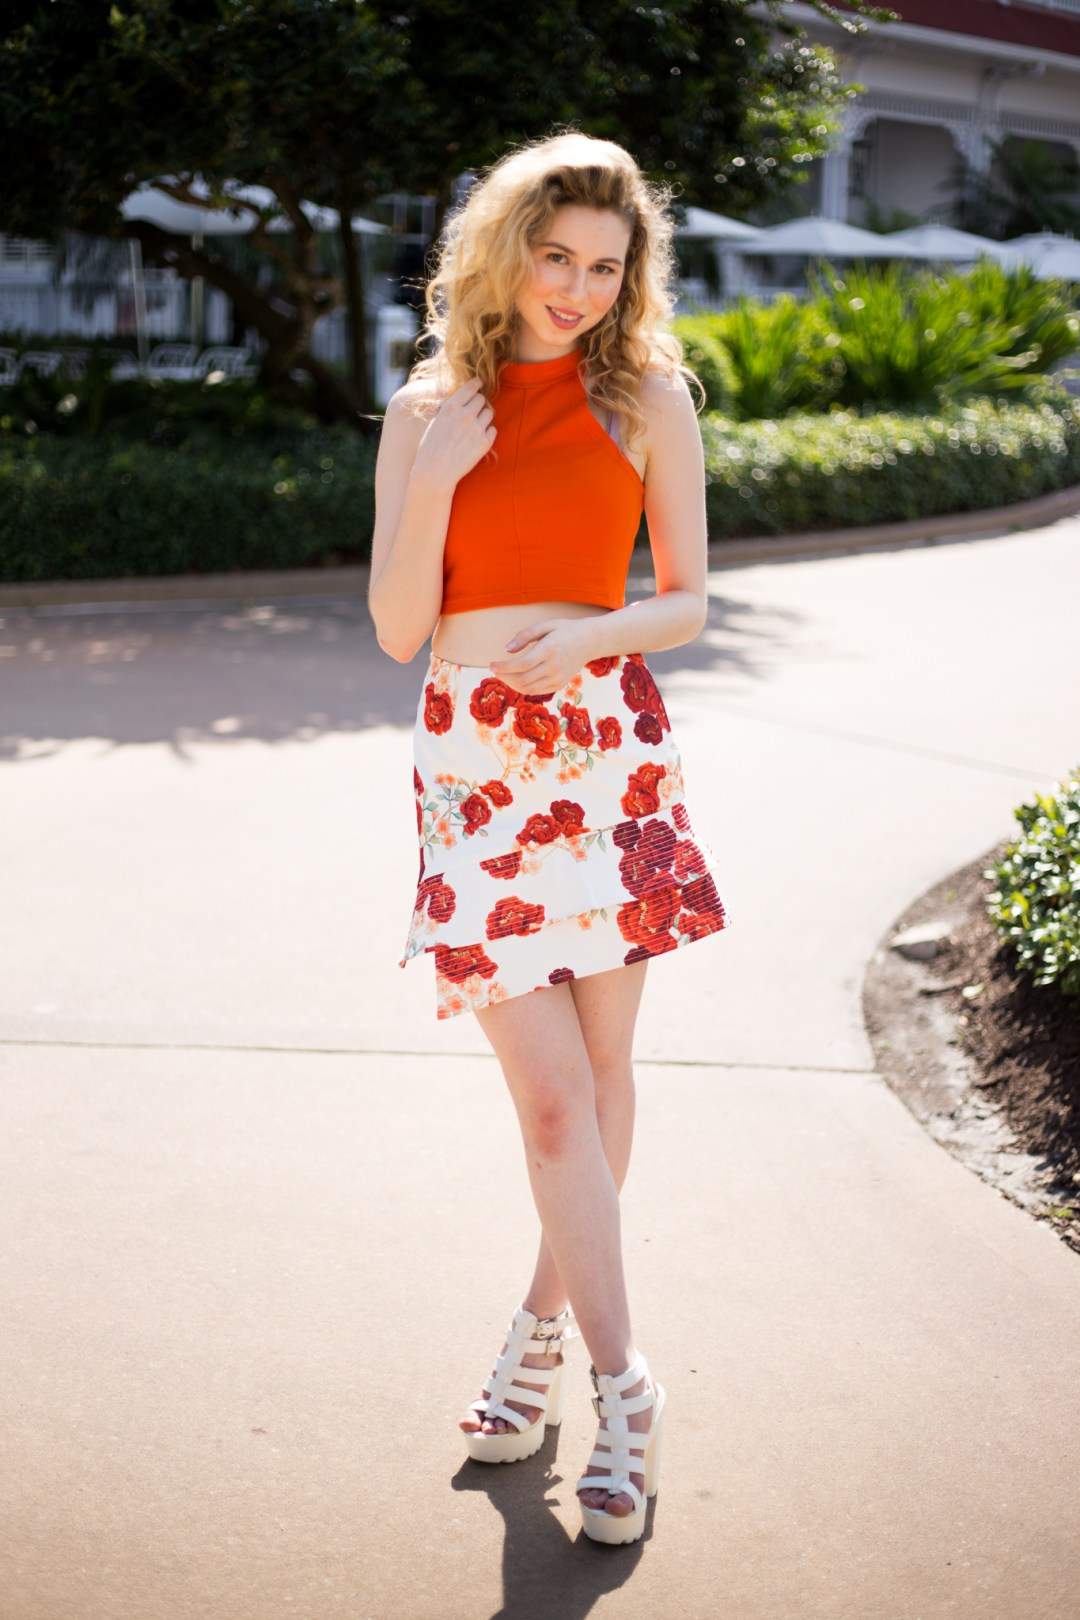 ORANGE_FLORAL_SKIRT_DISNEYWORLD_ANNIE_ROBINSON_FABINCBLOG_ 12